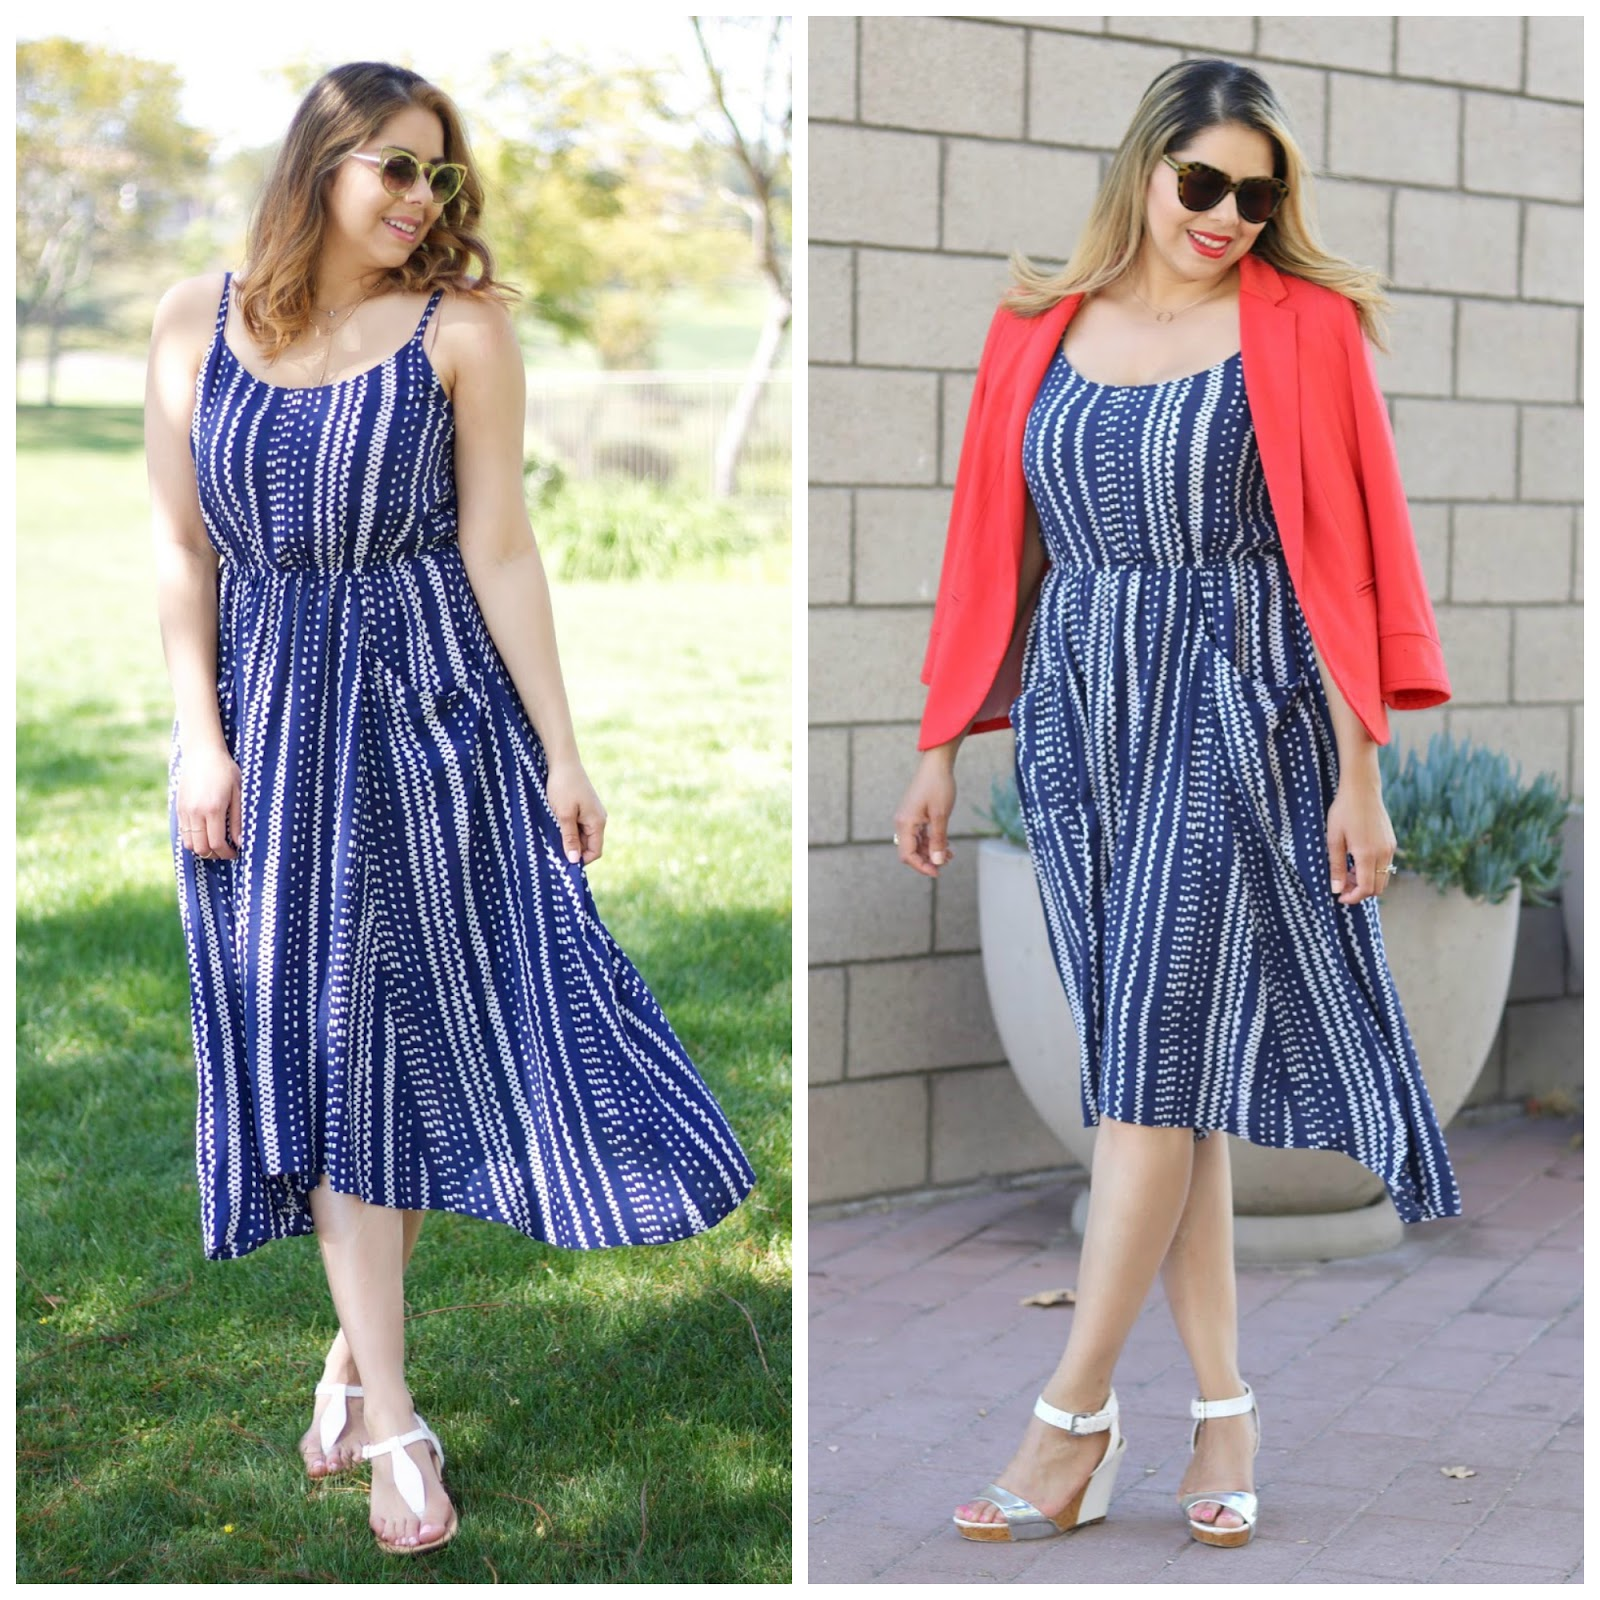 how to style a dress differently, 2 ways to wear 1 dress, two ways one dress, one item two ways